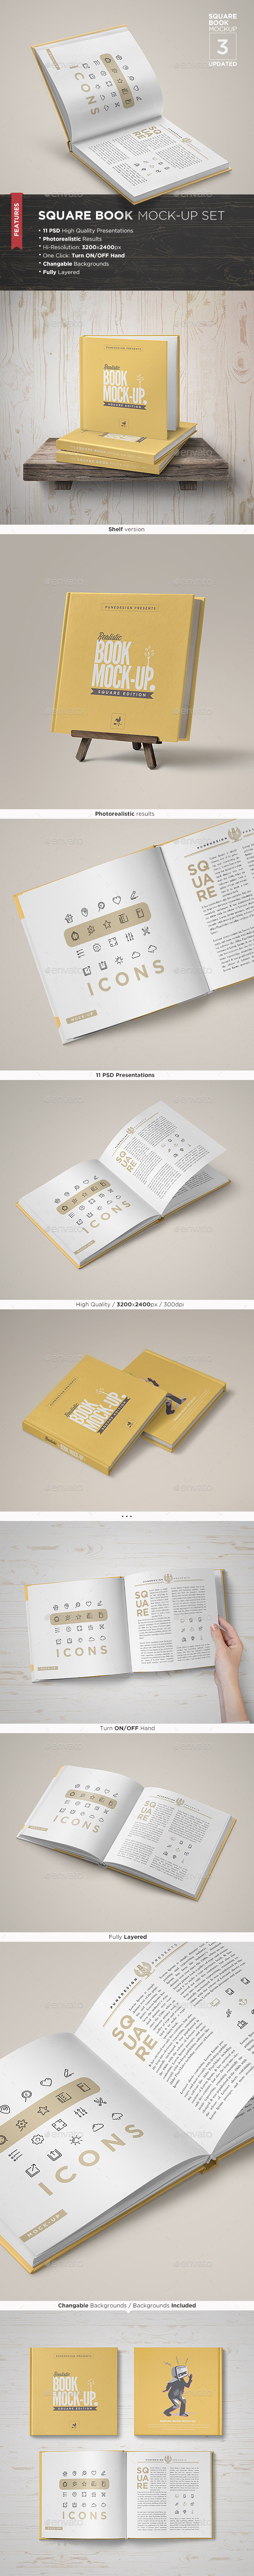 Square Book Mock-Up Set 3 - Books Print